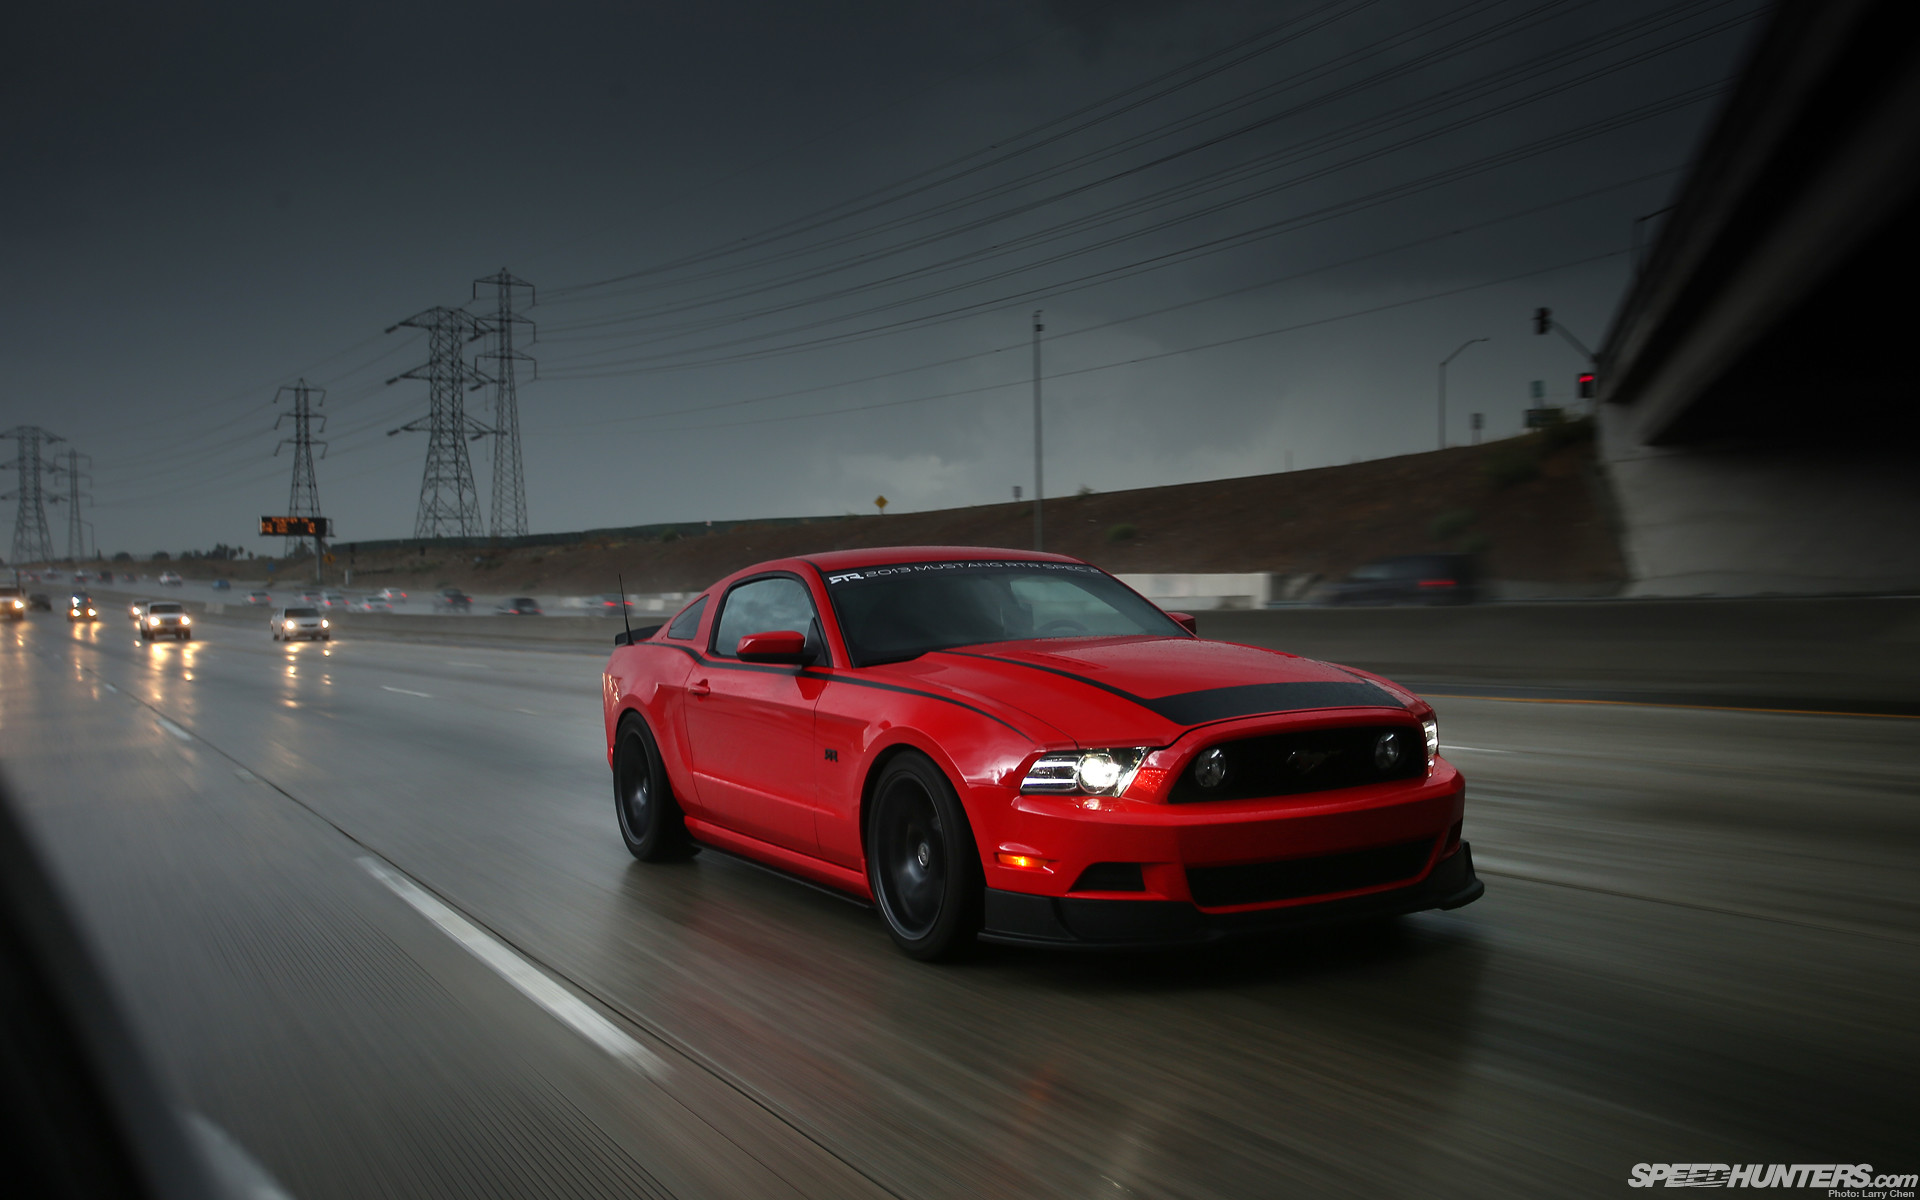 Ford mustang highway road cars vehicles wallpaper | | 39869 |  WallpaperUP